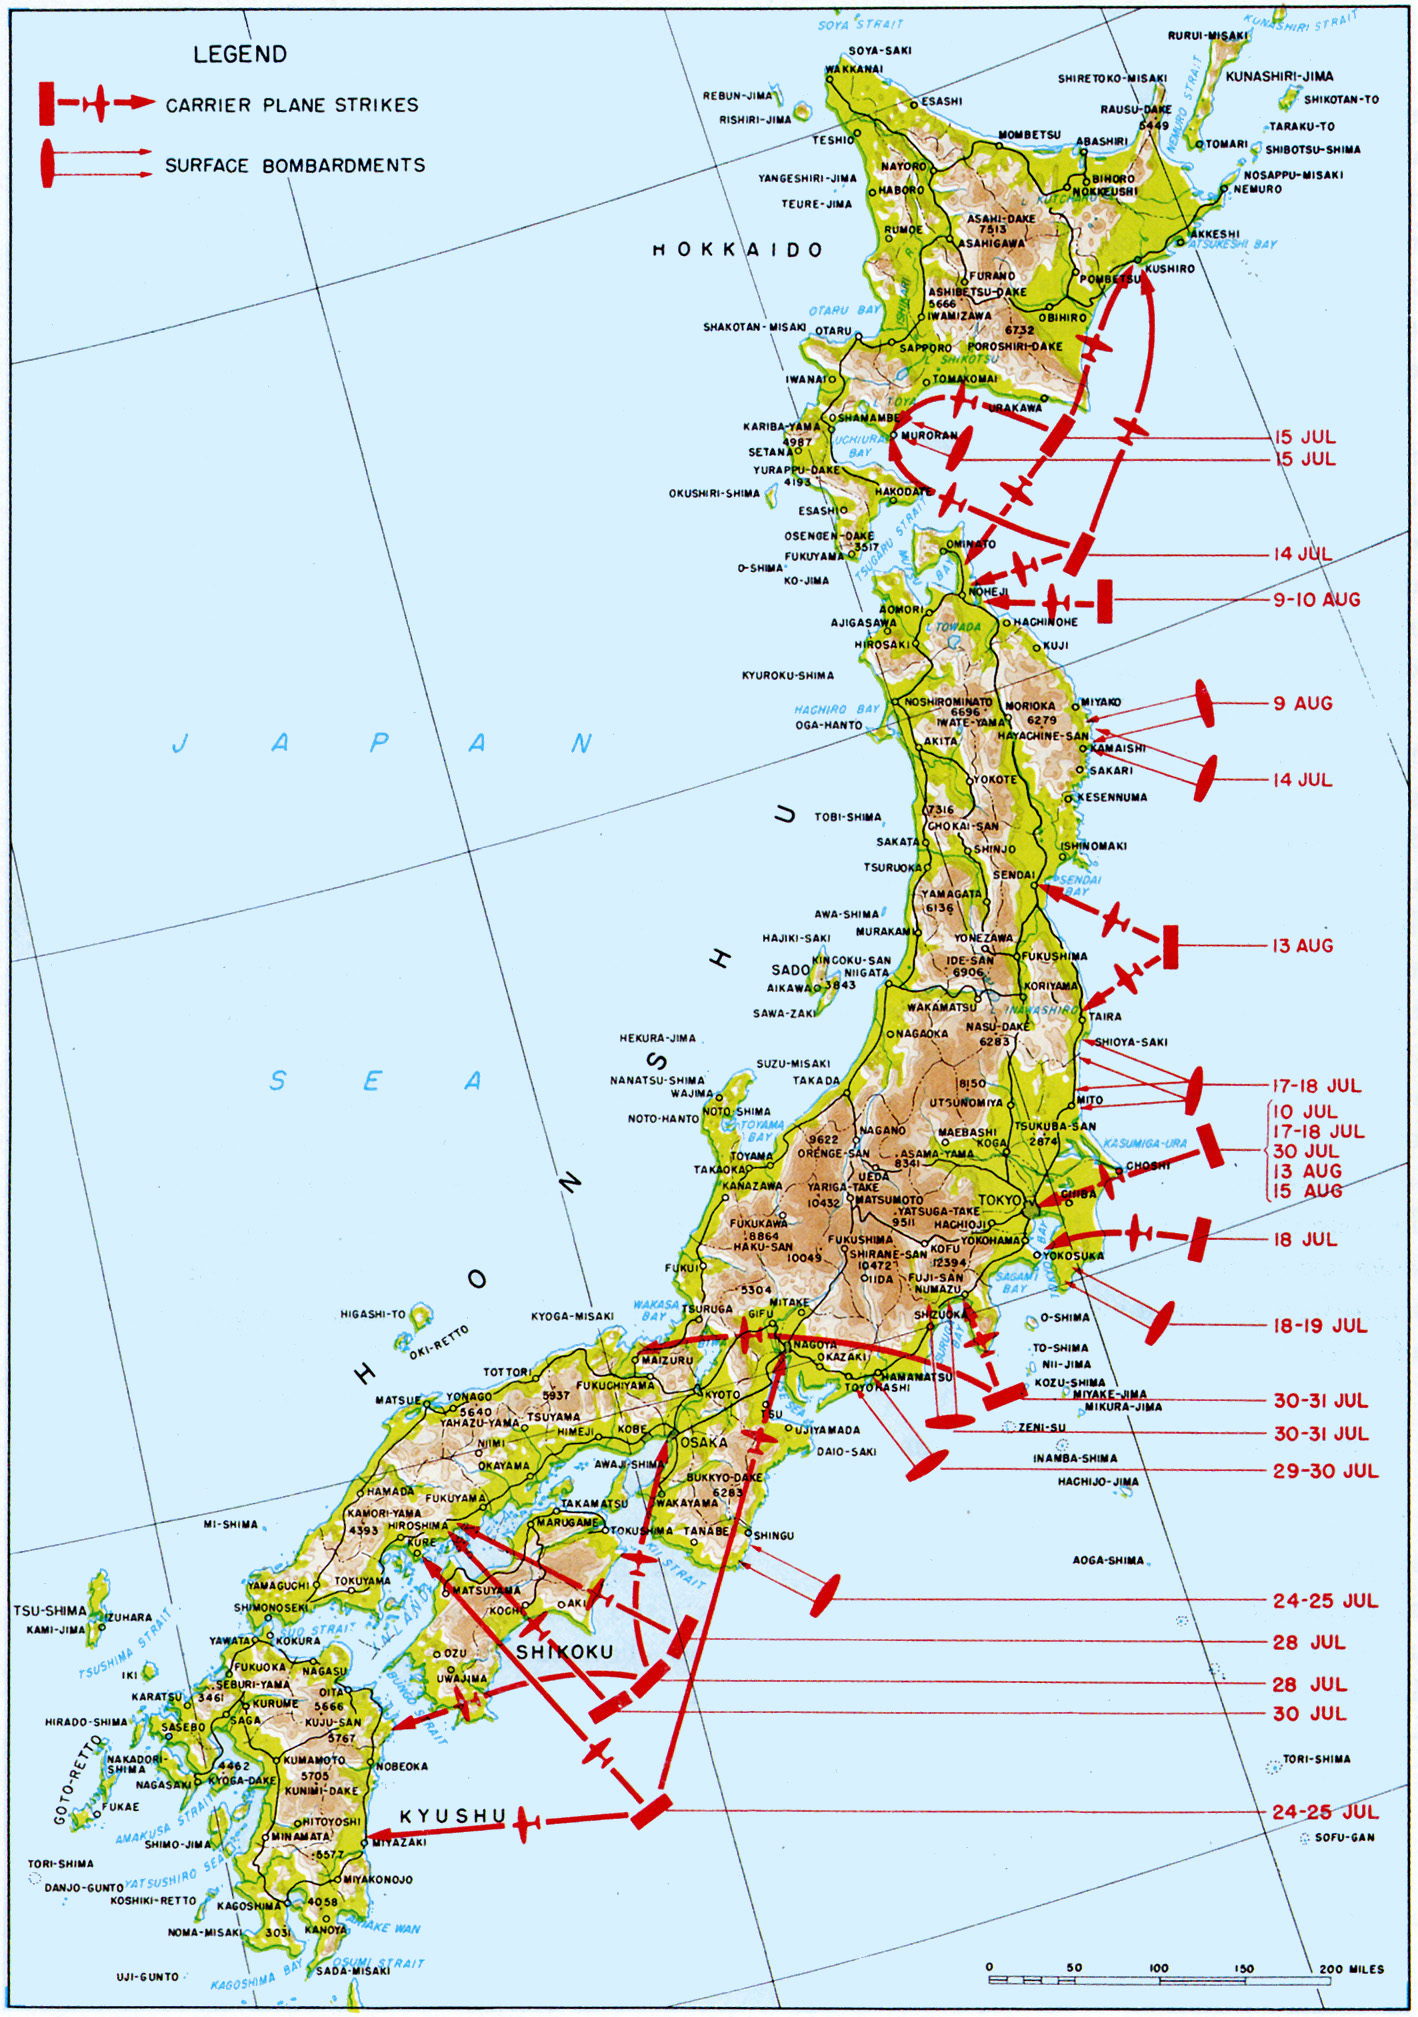 FileAllied Naval Operations Off Japan During July And August - Japan map labeled